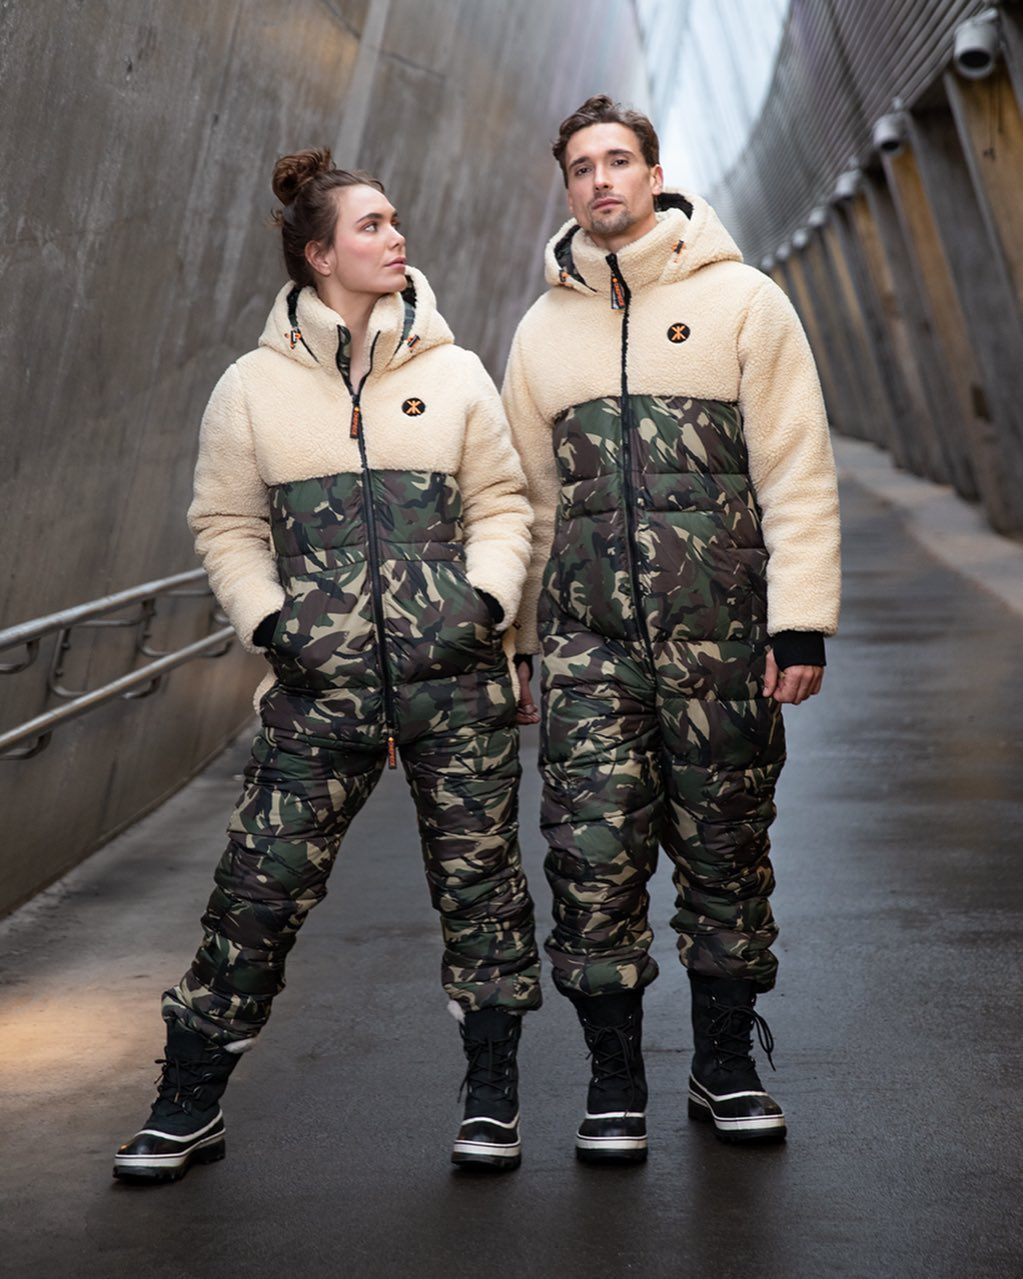 How To Wear The Camouflage Trend In 7 Easy Ways | FashionBeans